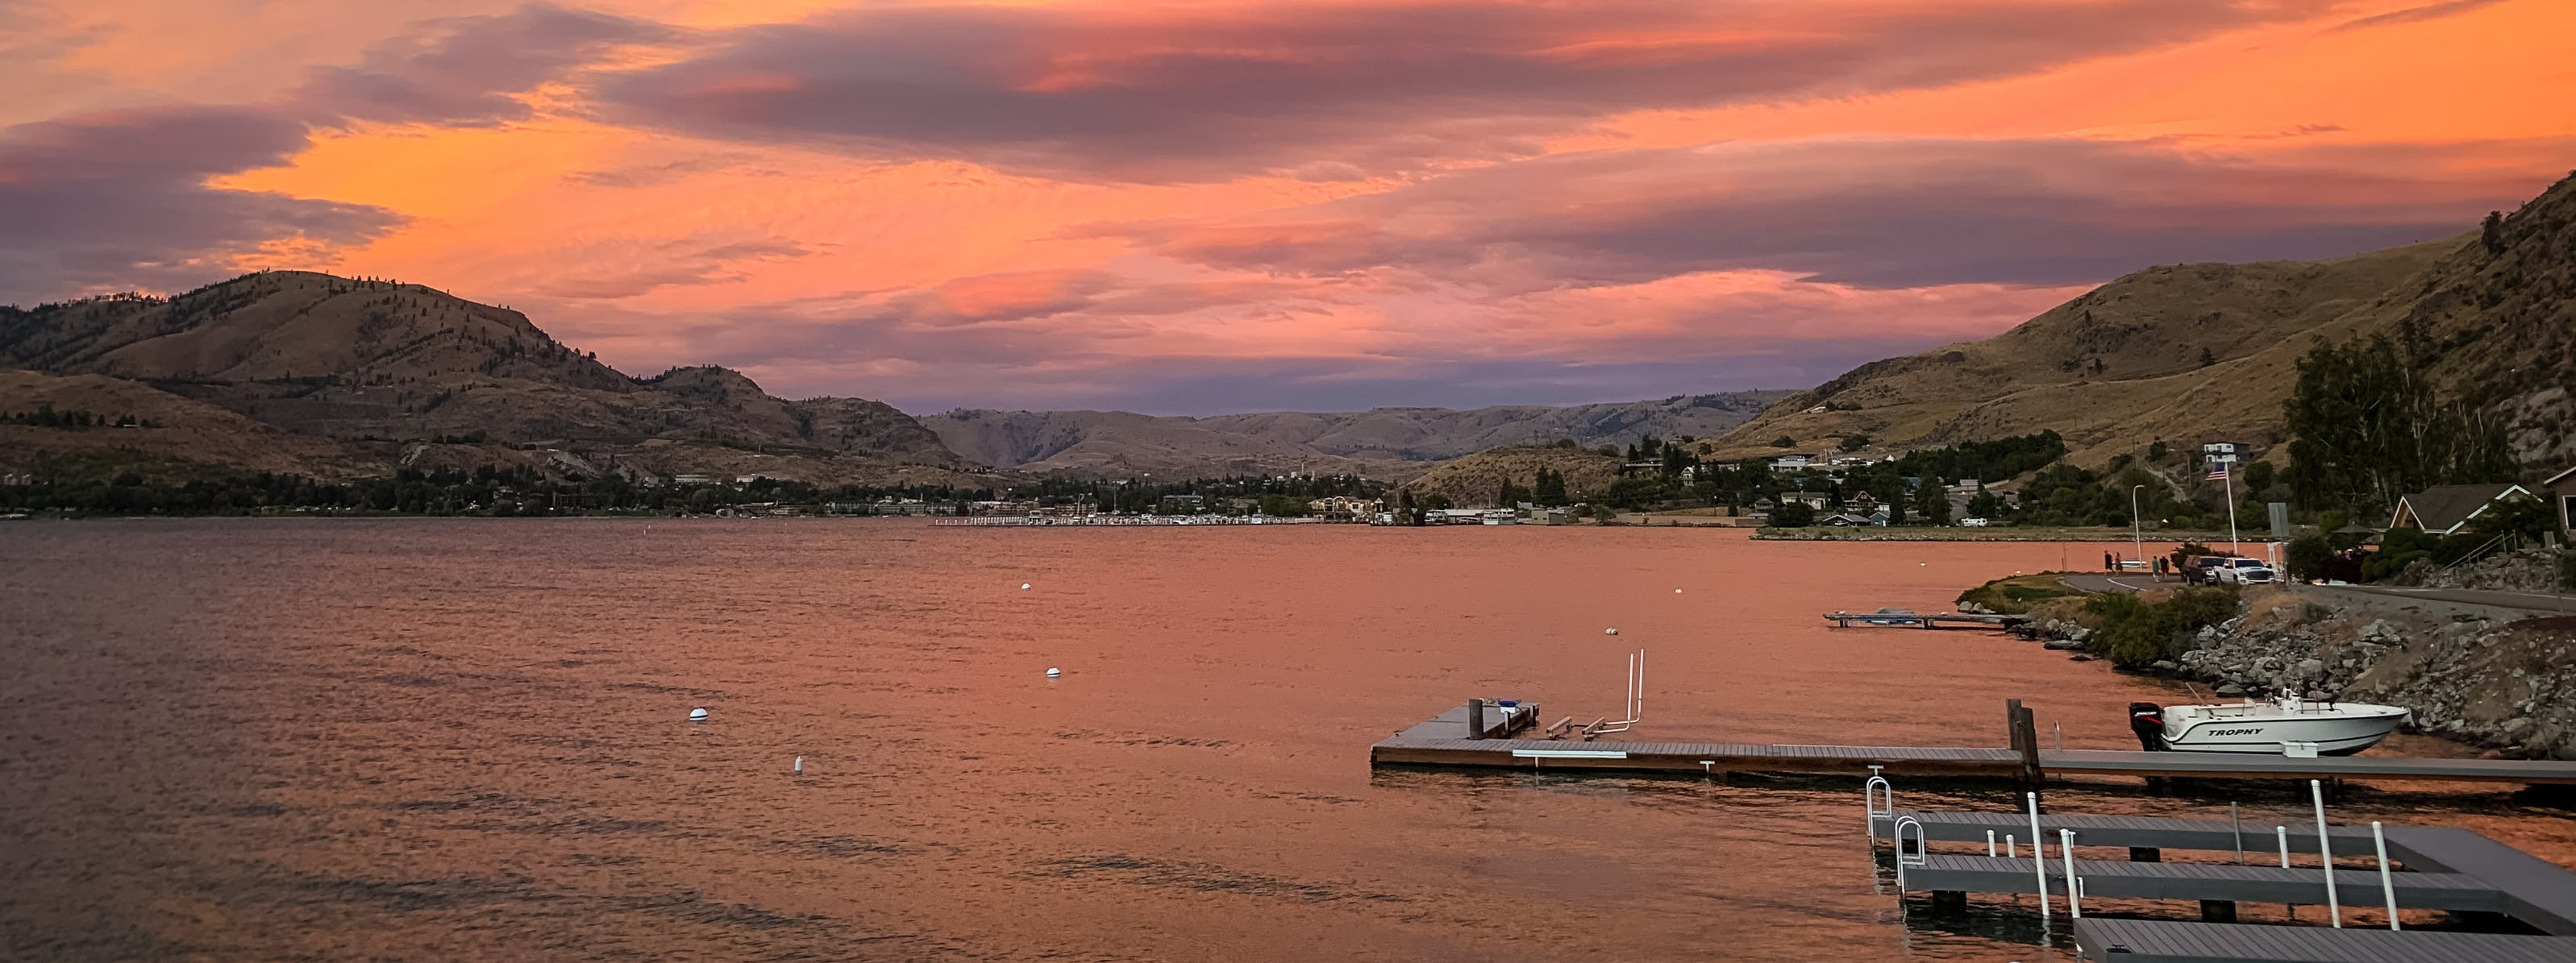 The Best Places To Eat & Drink In Chelan - Seattle - The Infatuation